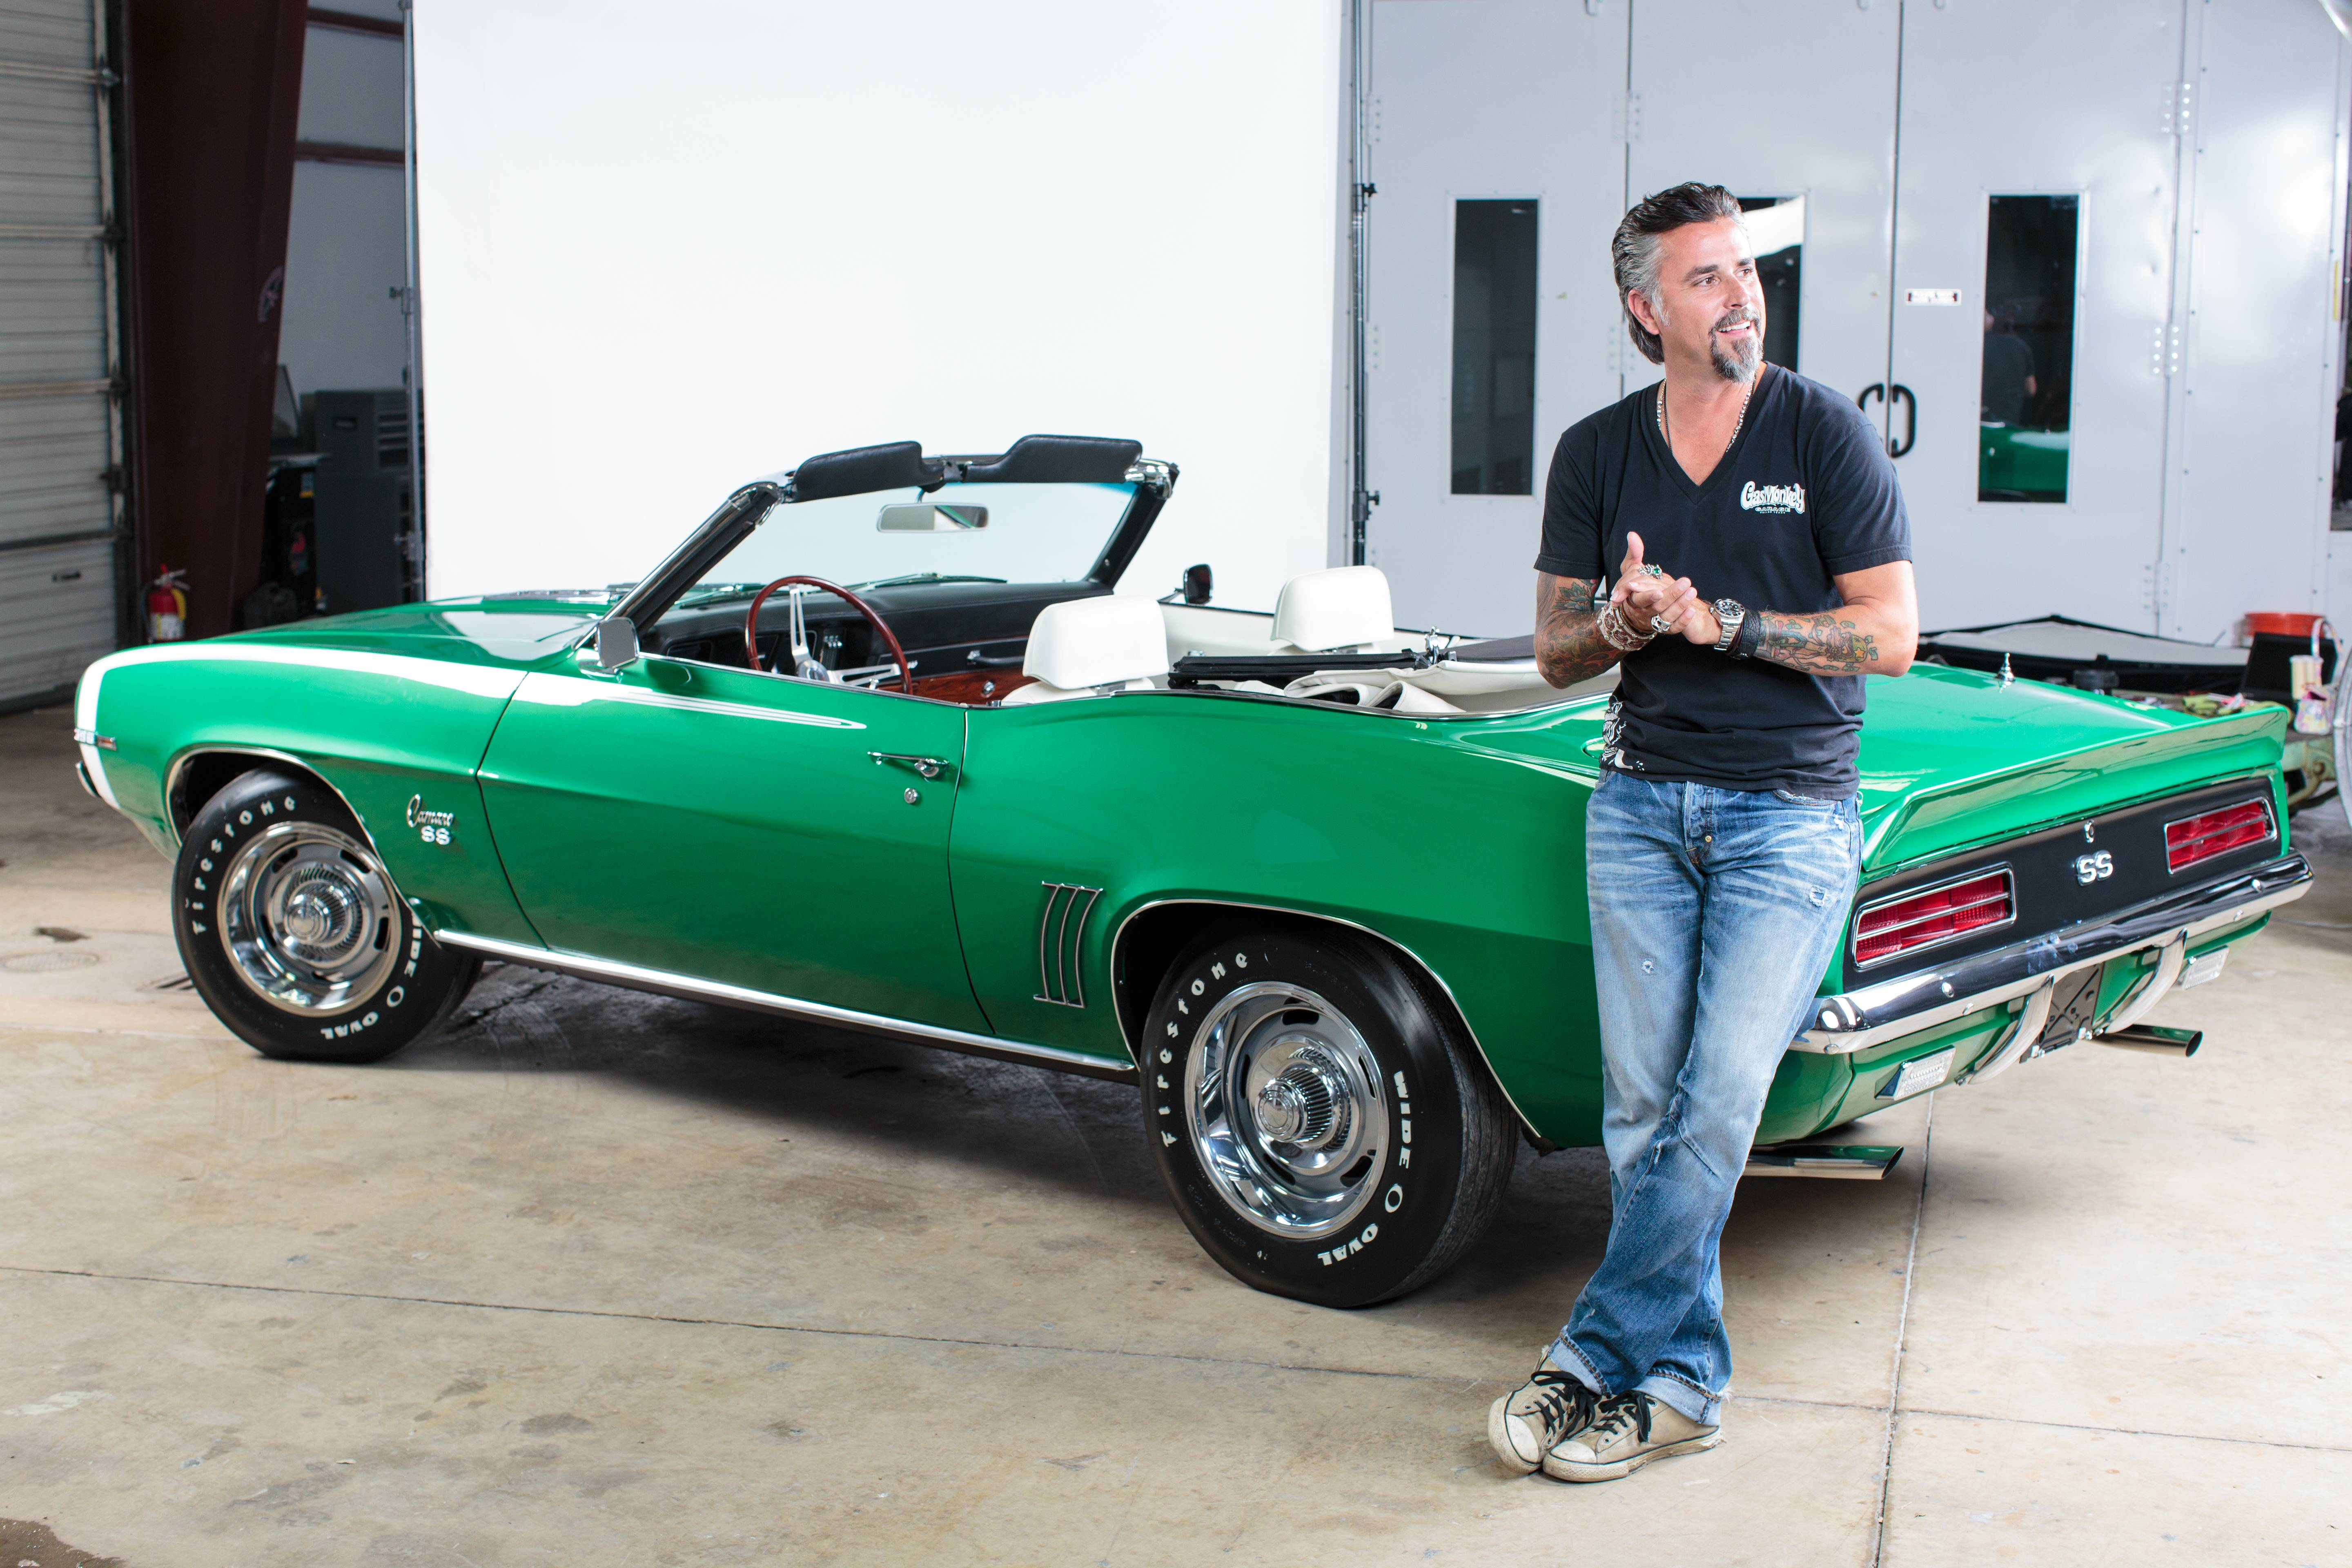 gas monkey richard rawlings gives peek under the hood of new fast n loud season